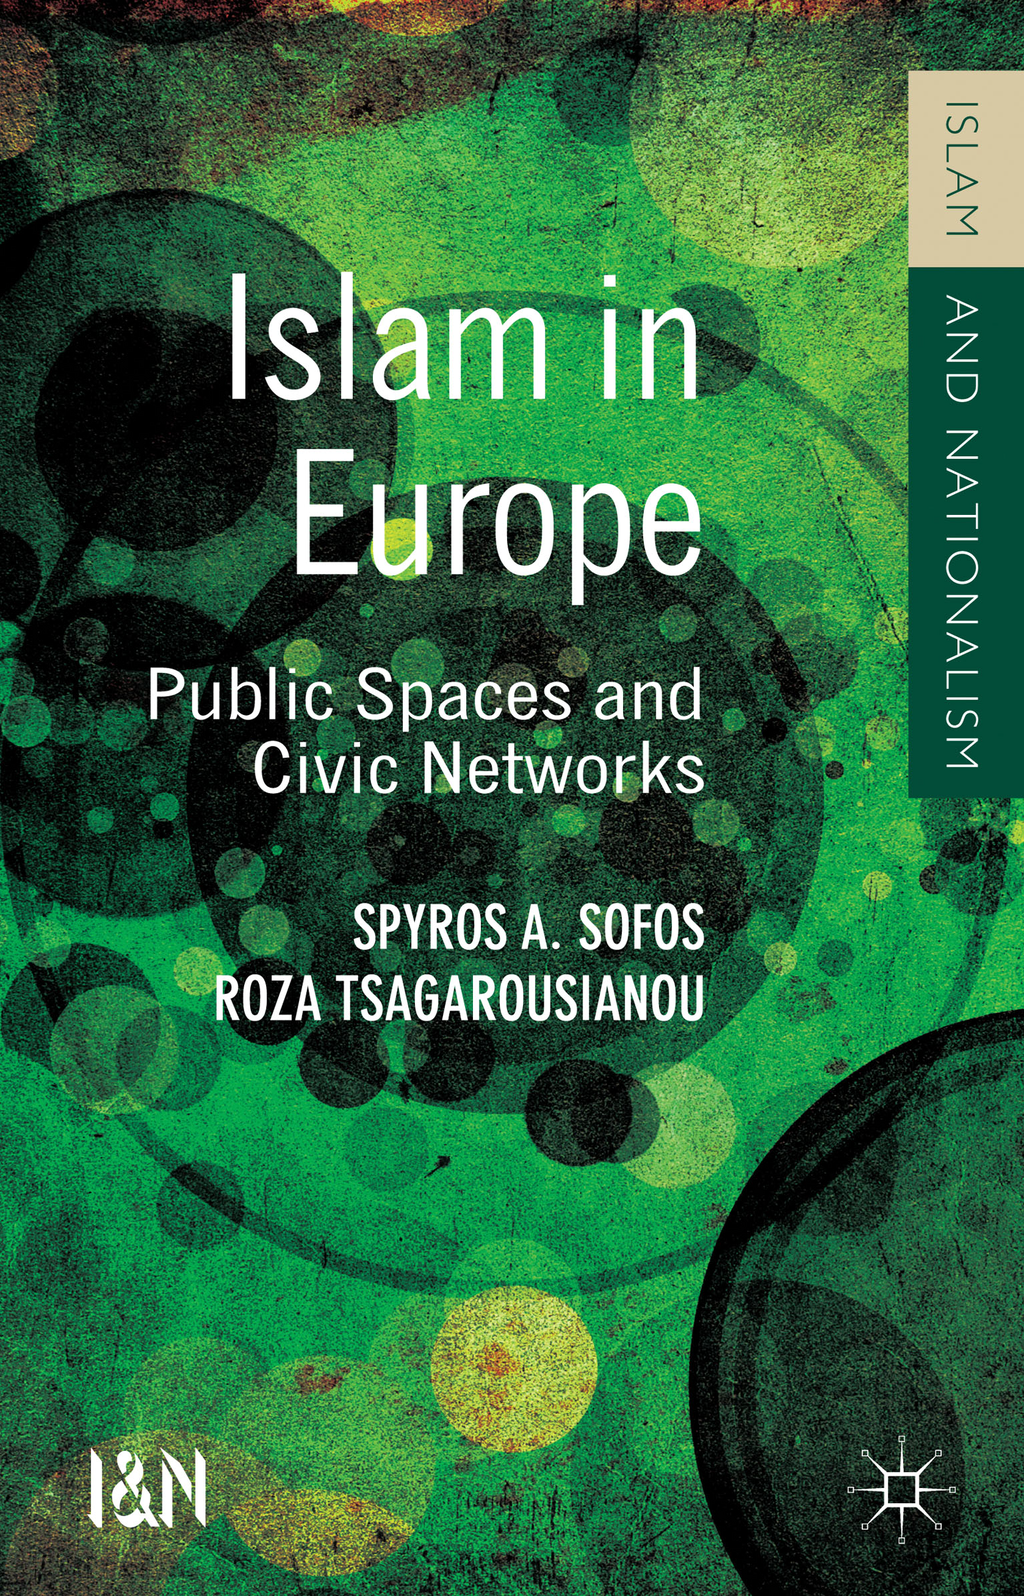 Islam in Europe Public Spaces and Civic Networks